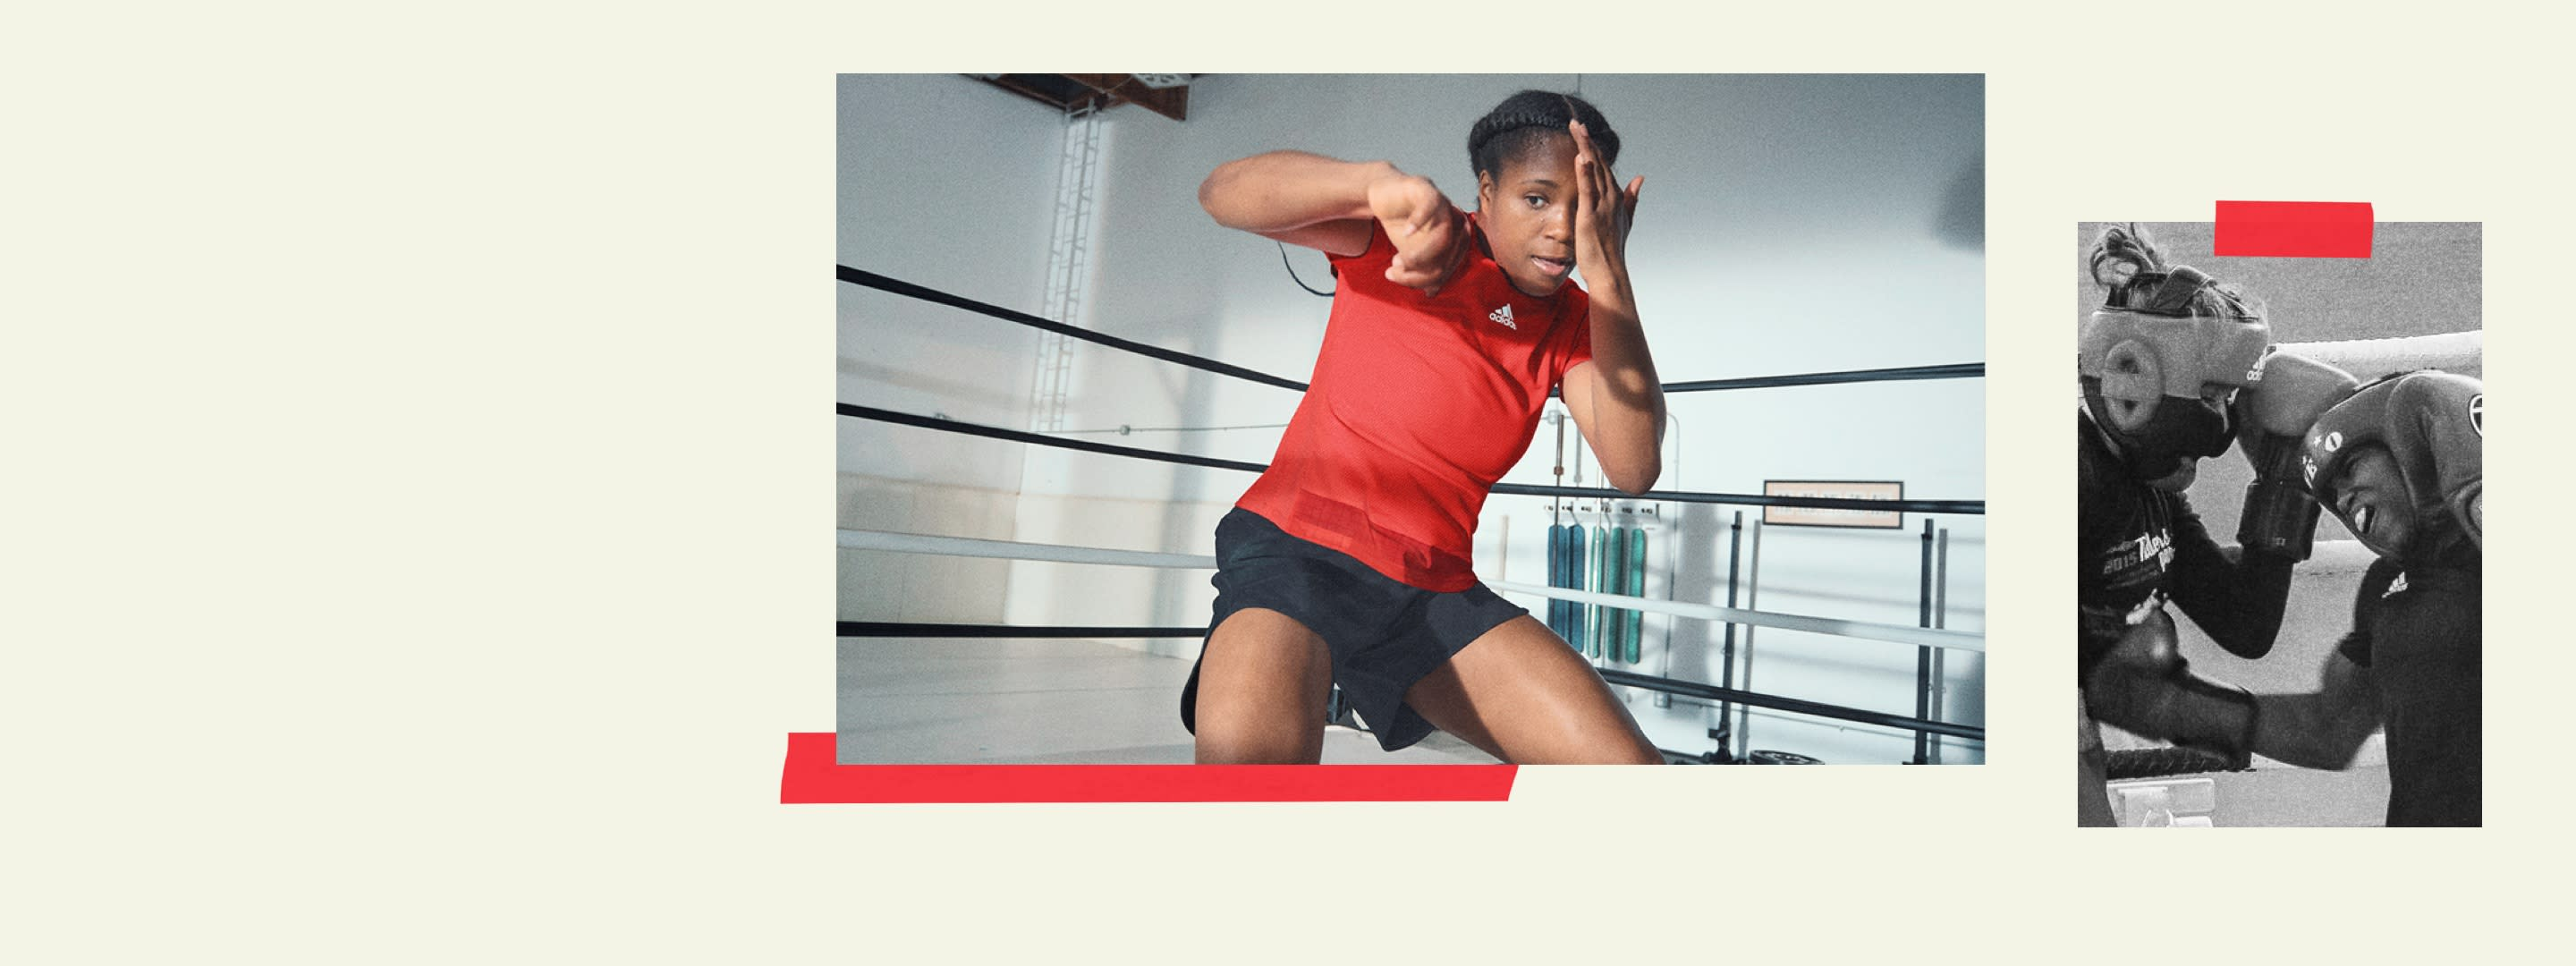 An image showing Caroline Dubois shadow boxing and boxing an opponent